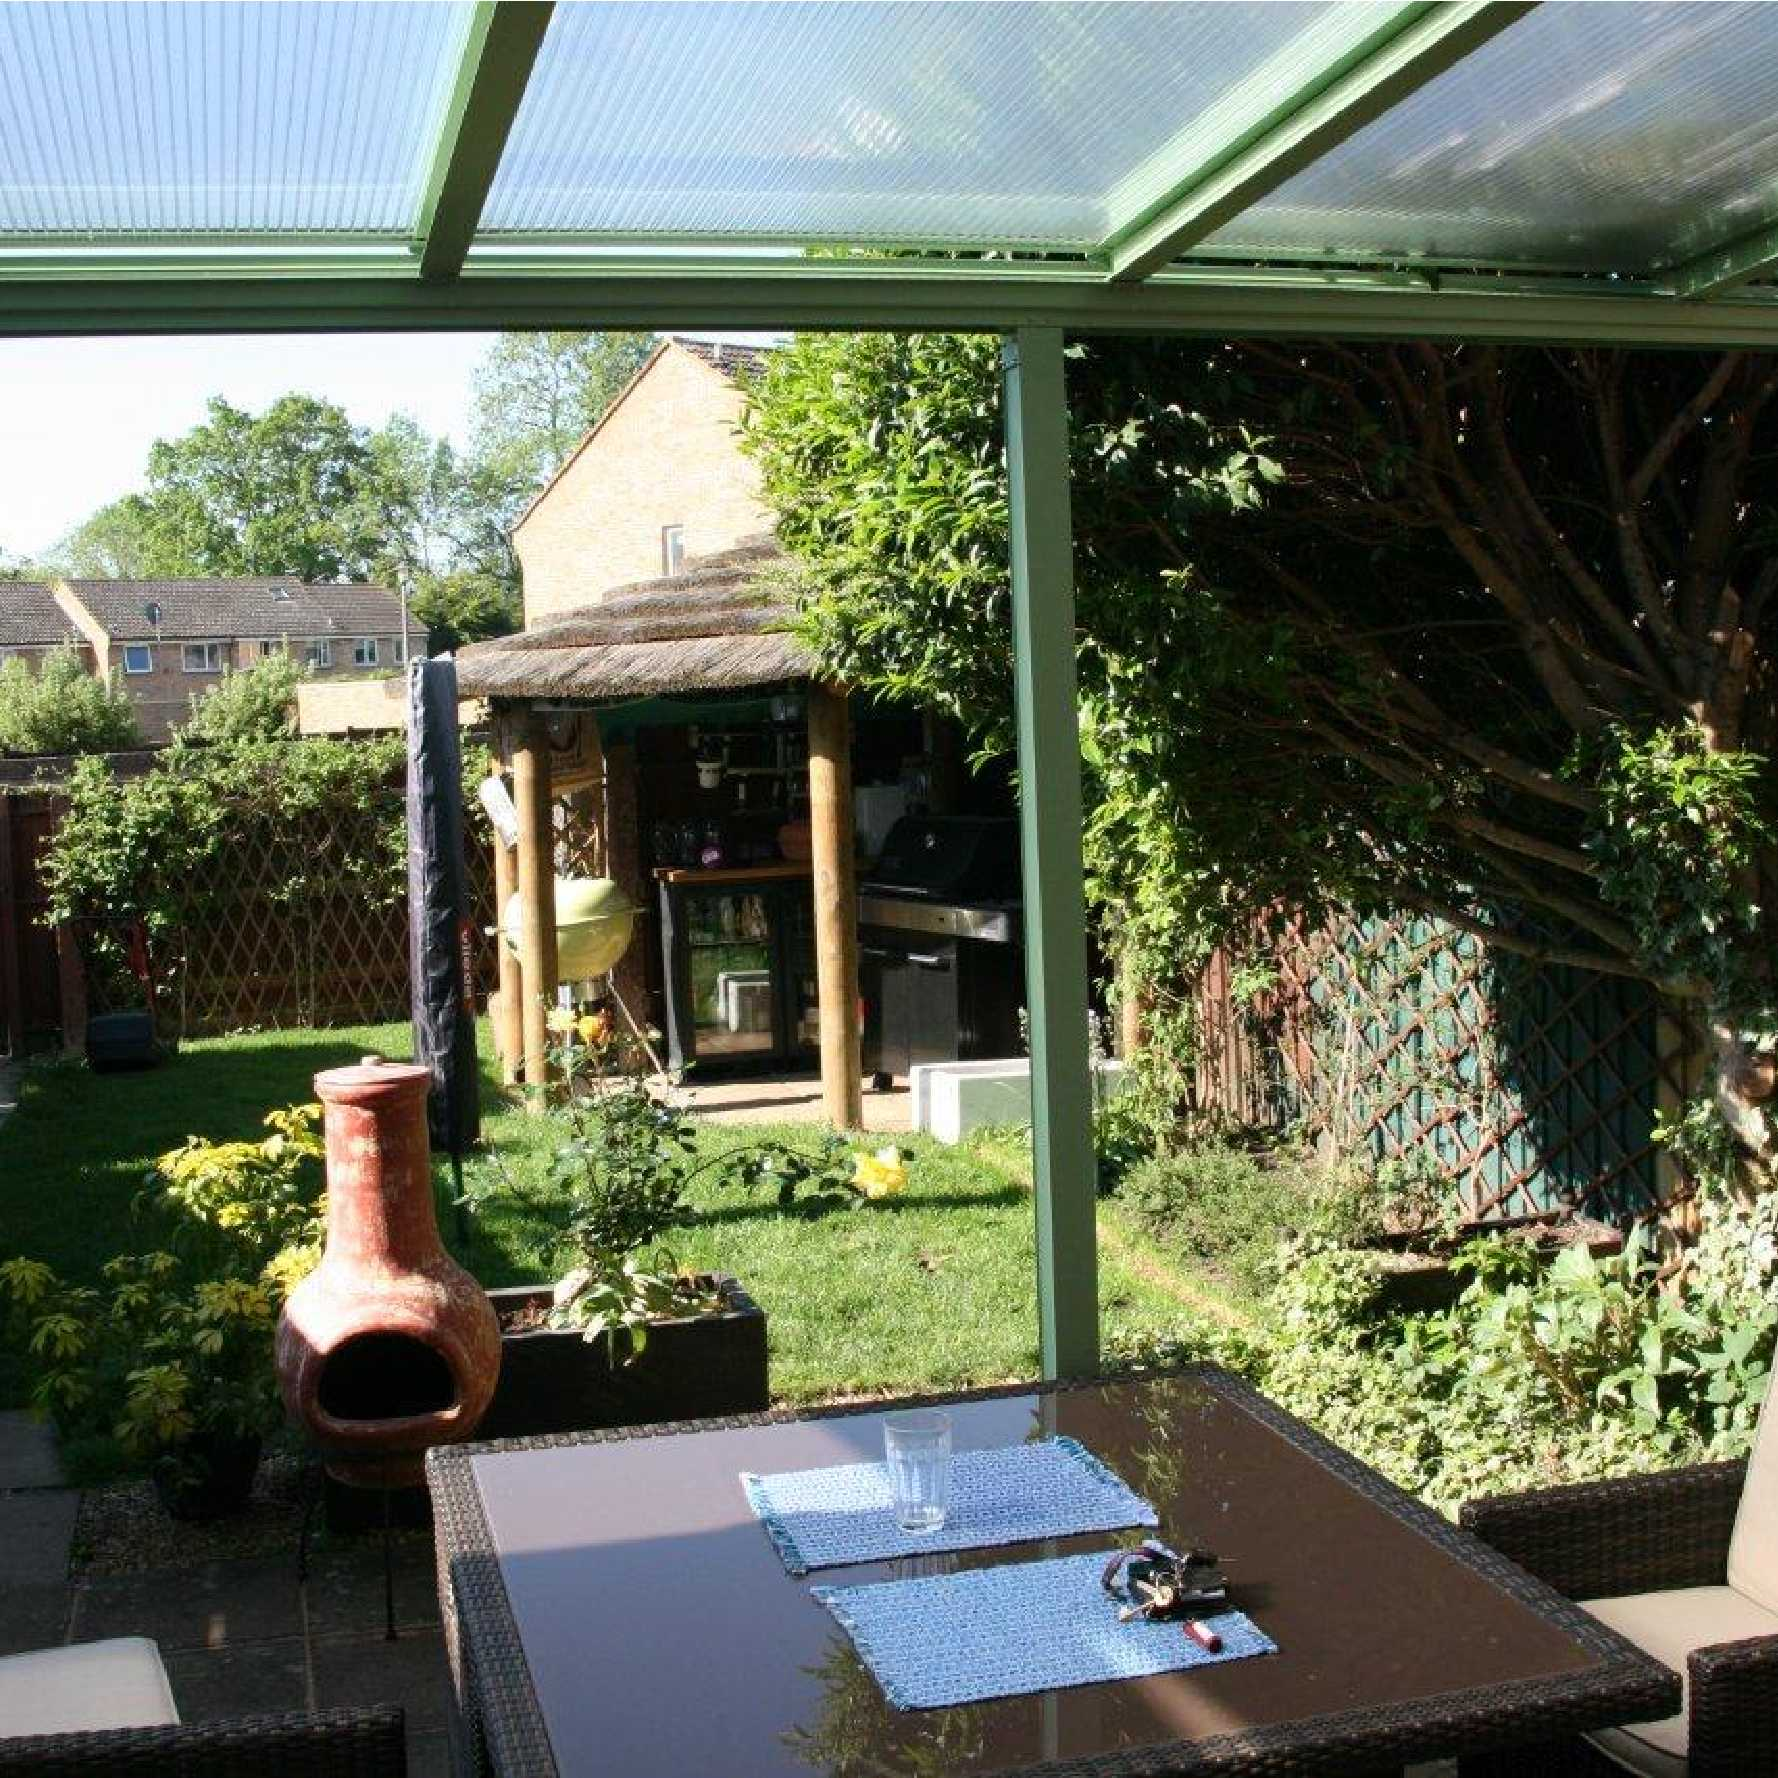 Affordable Omega Smart White Lean-To Canopy with 16mm Polycarbonate Glazing - 7.4m (W) x 4.5m (P), (4) Supporting Posts